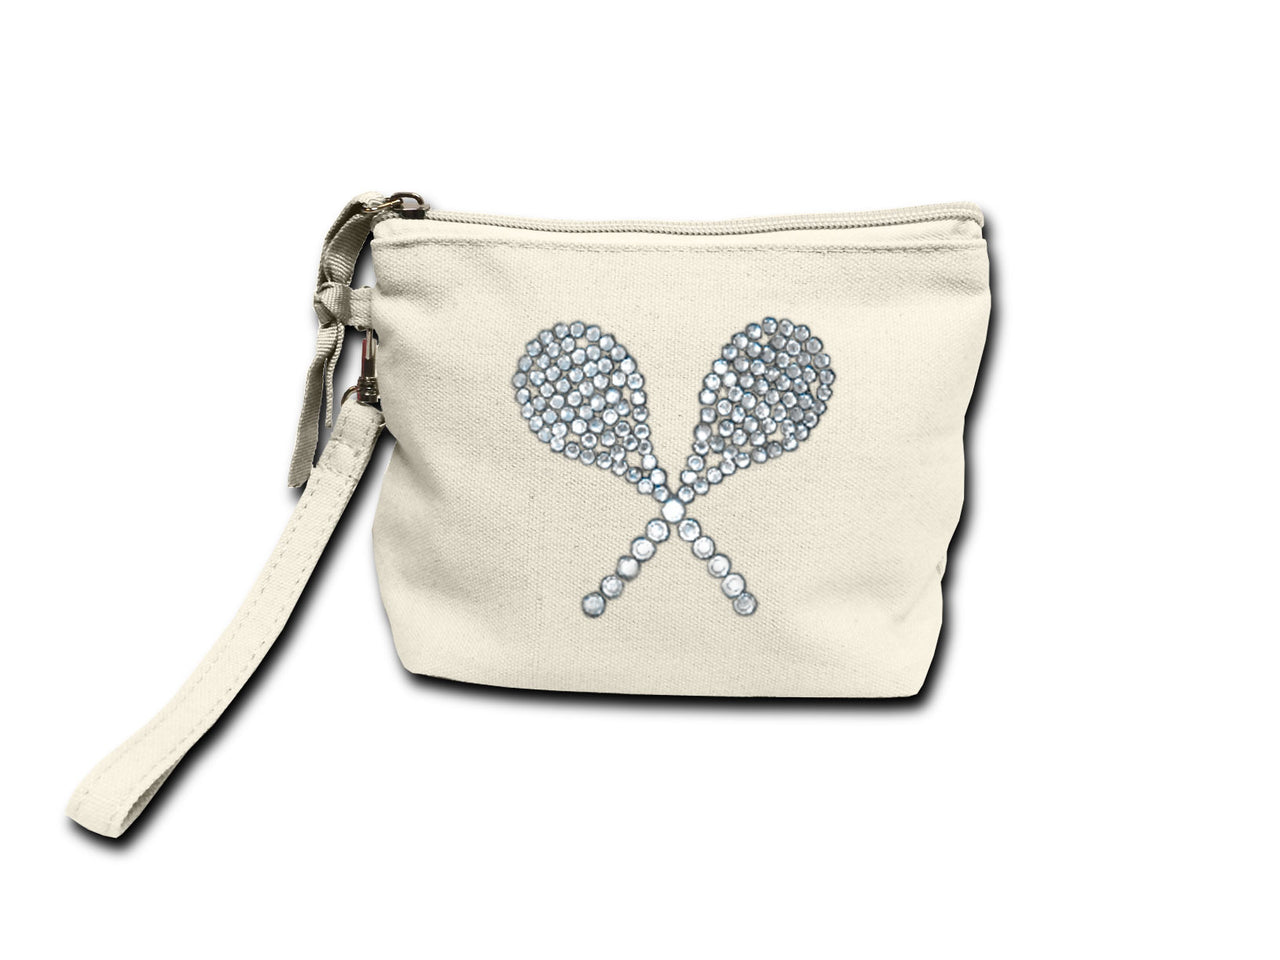 Make-Up Purse Tennis Raquets